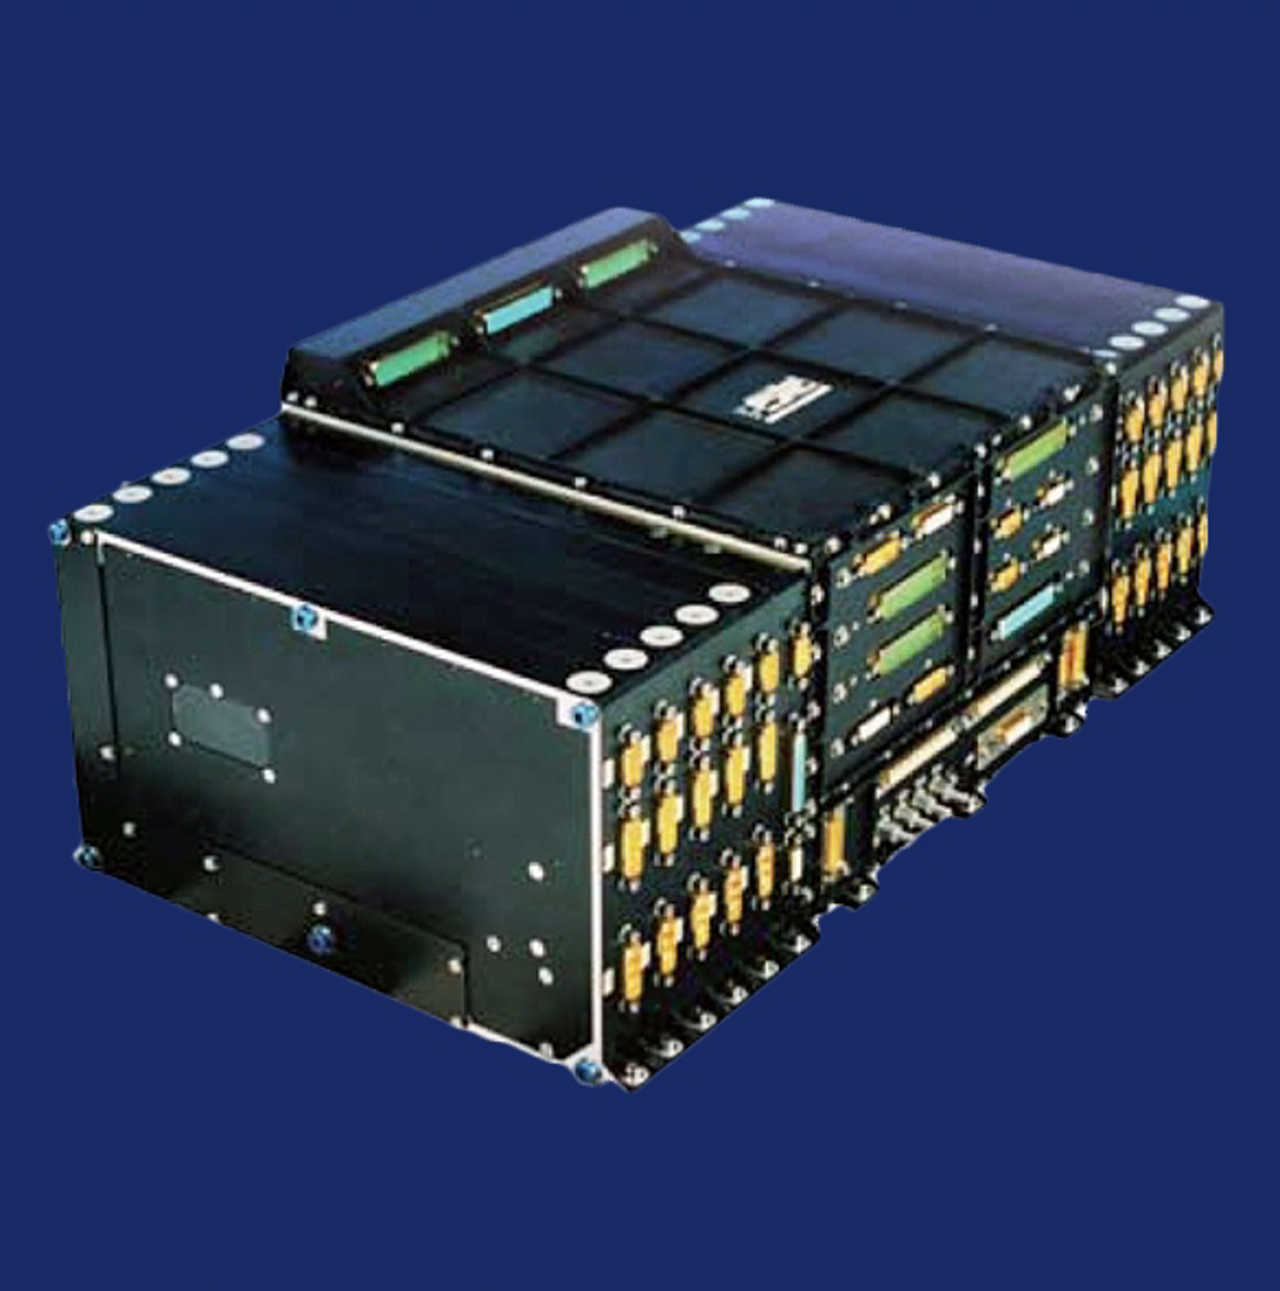 Airbus' modular power conditioning and distribution units are designed for missions in low Earth orbit.